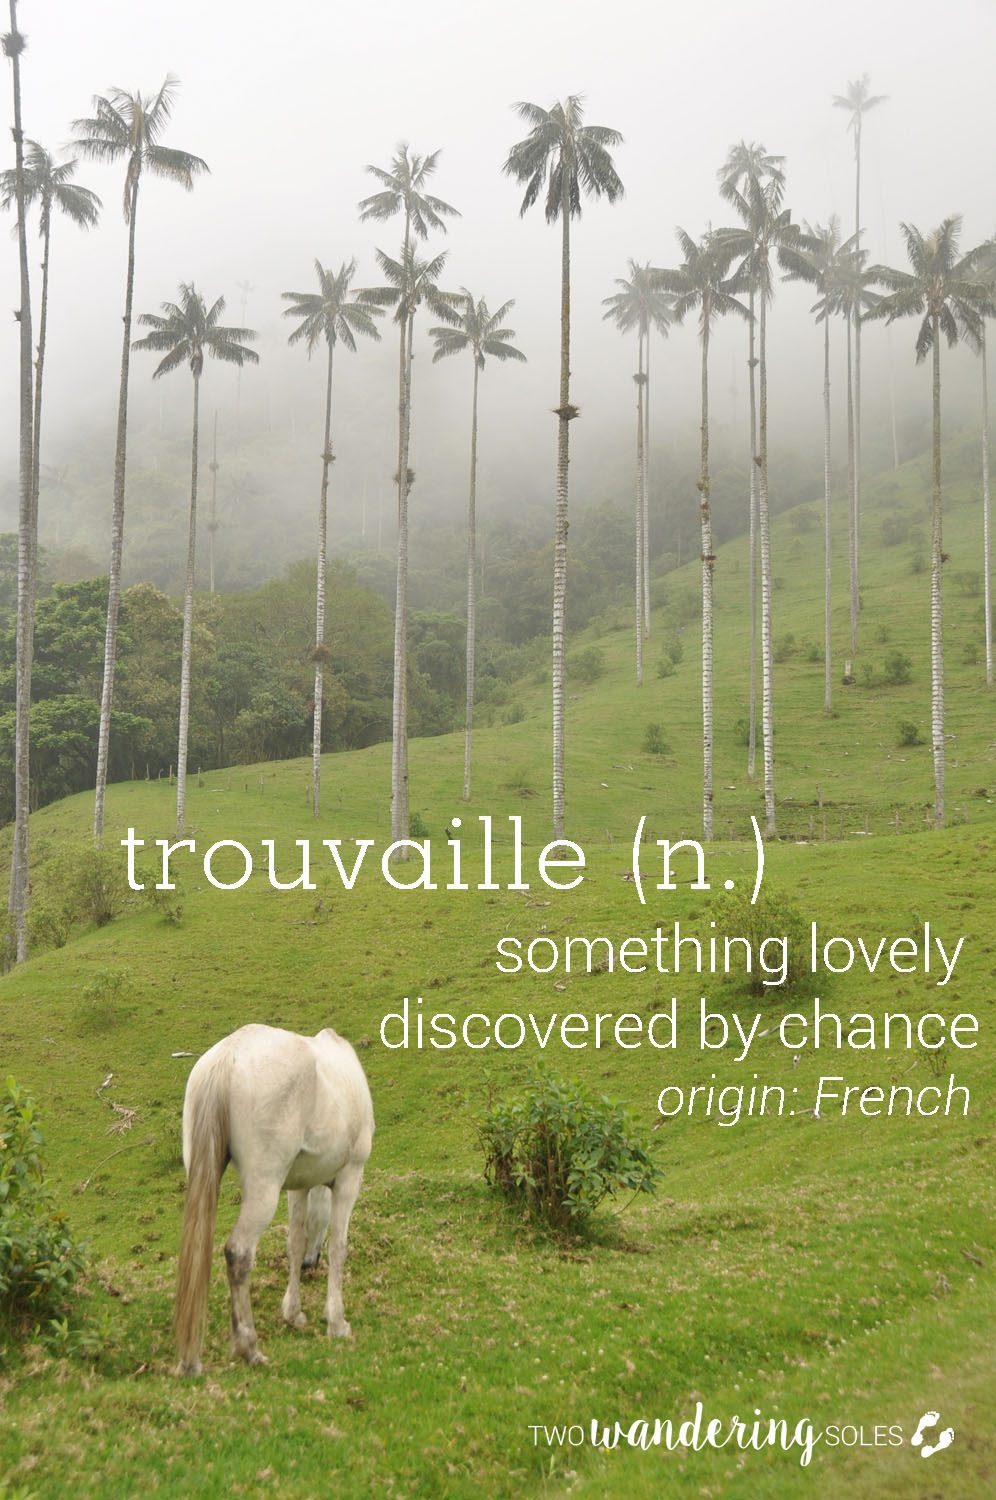 Trouvaille Awesome Travel Words